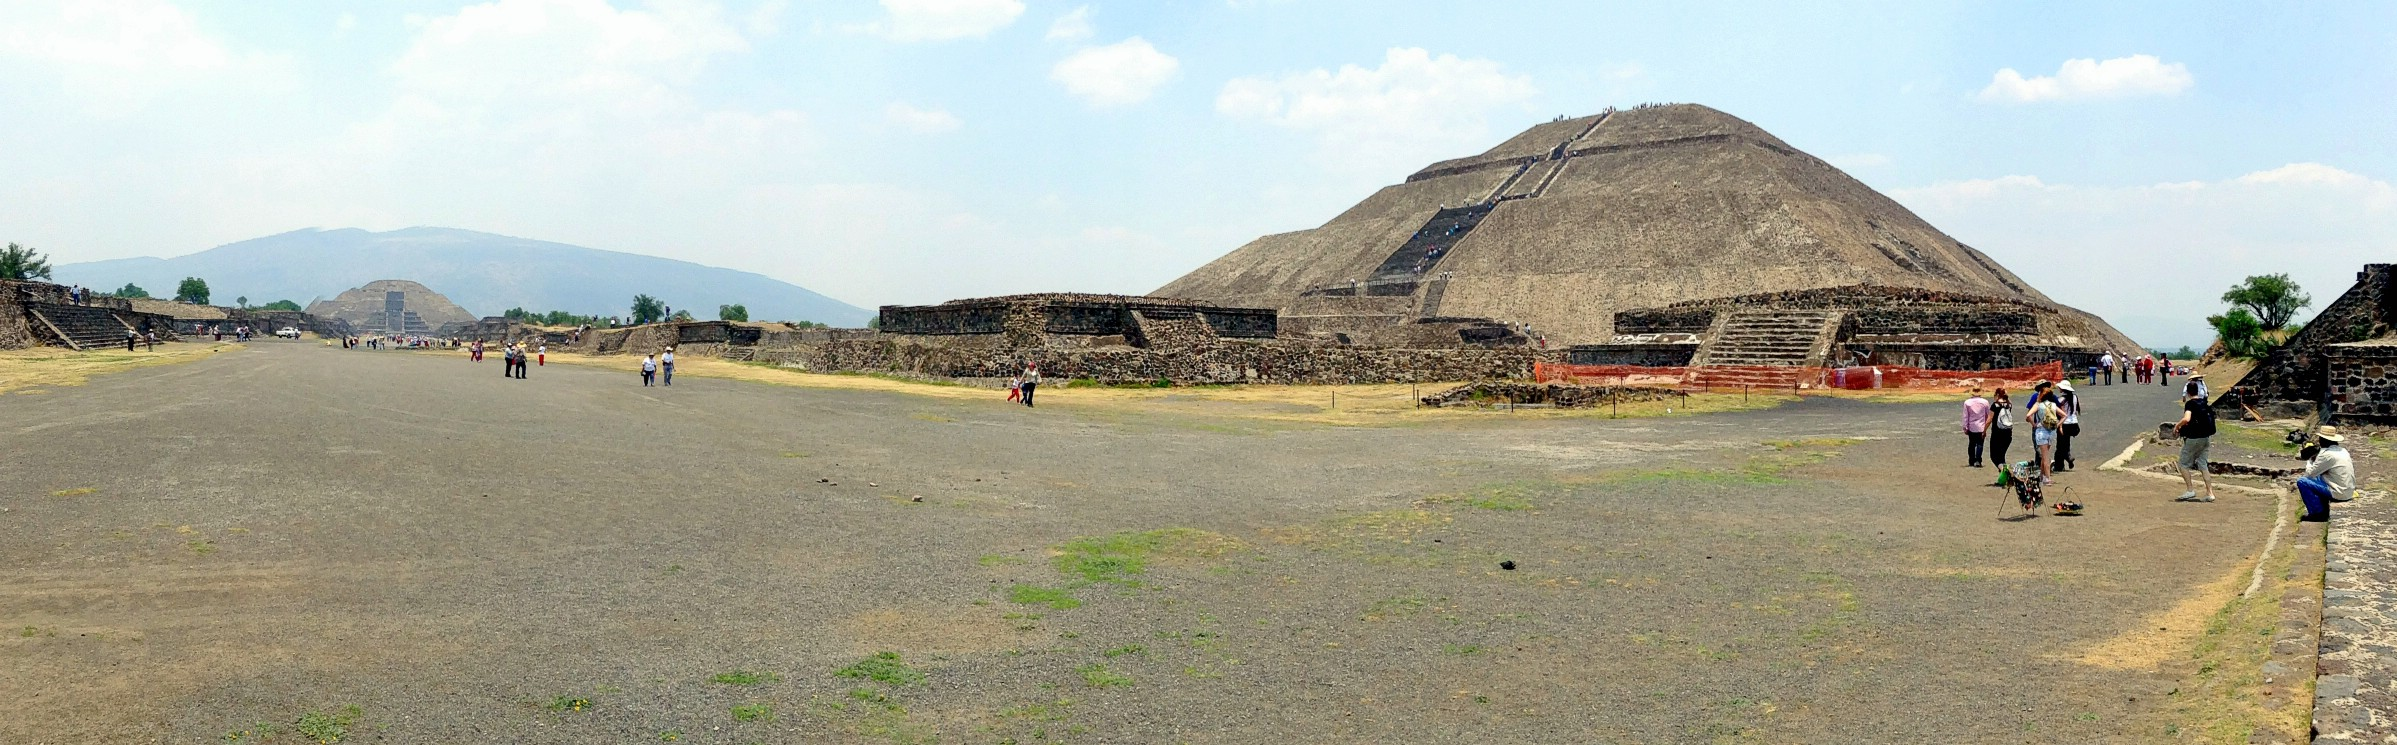 An iPod panorama of Teotihuacan, Mexico. April 29th 2013.